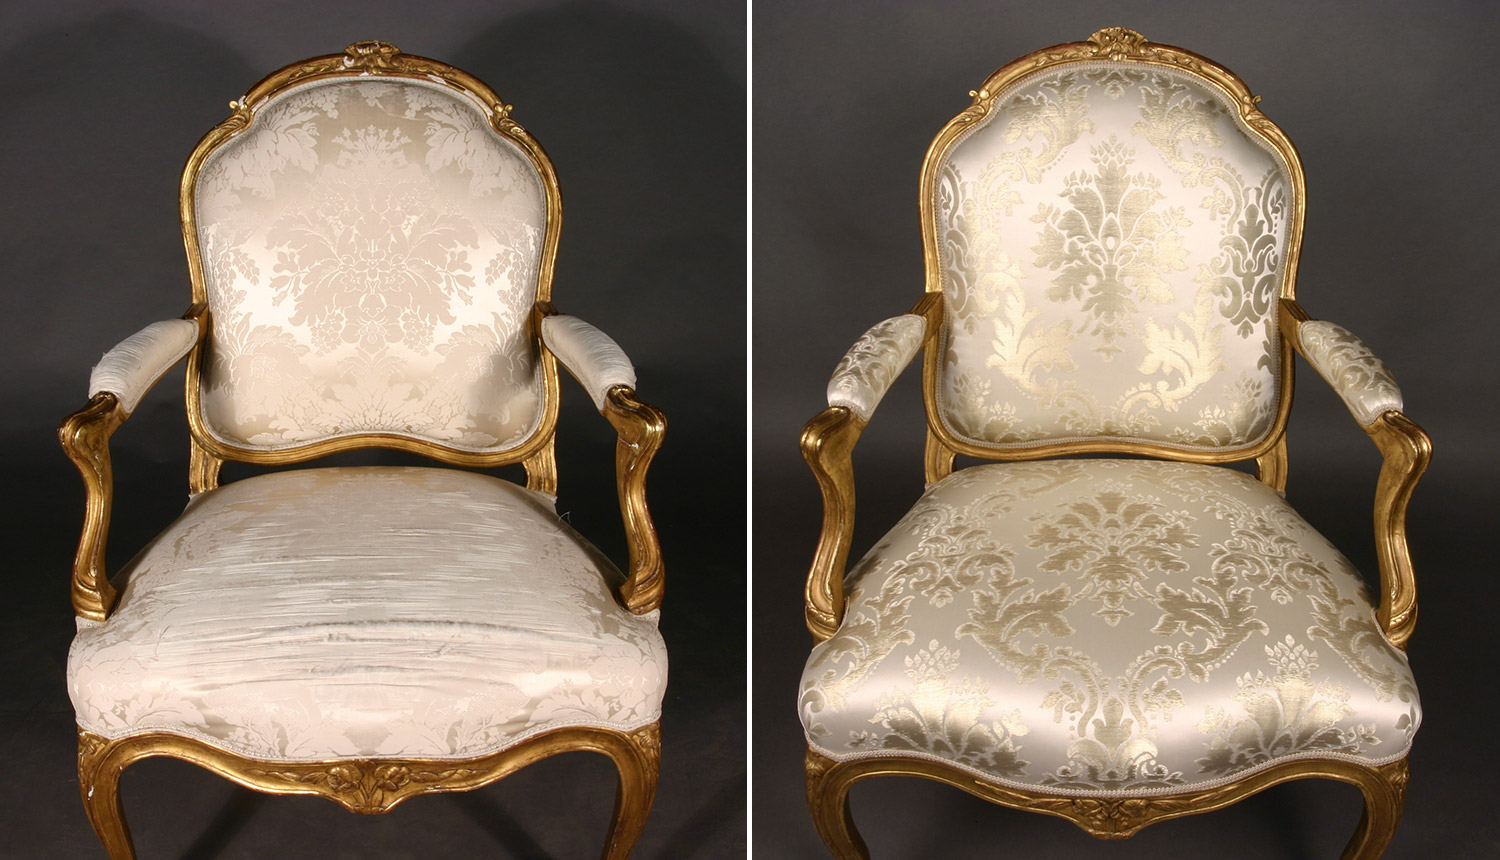 Louis XV armchair prior and after upholstery fabric replacement